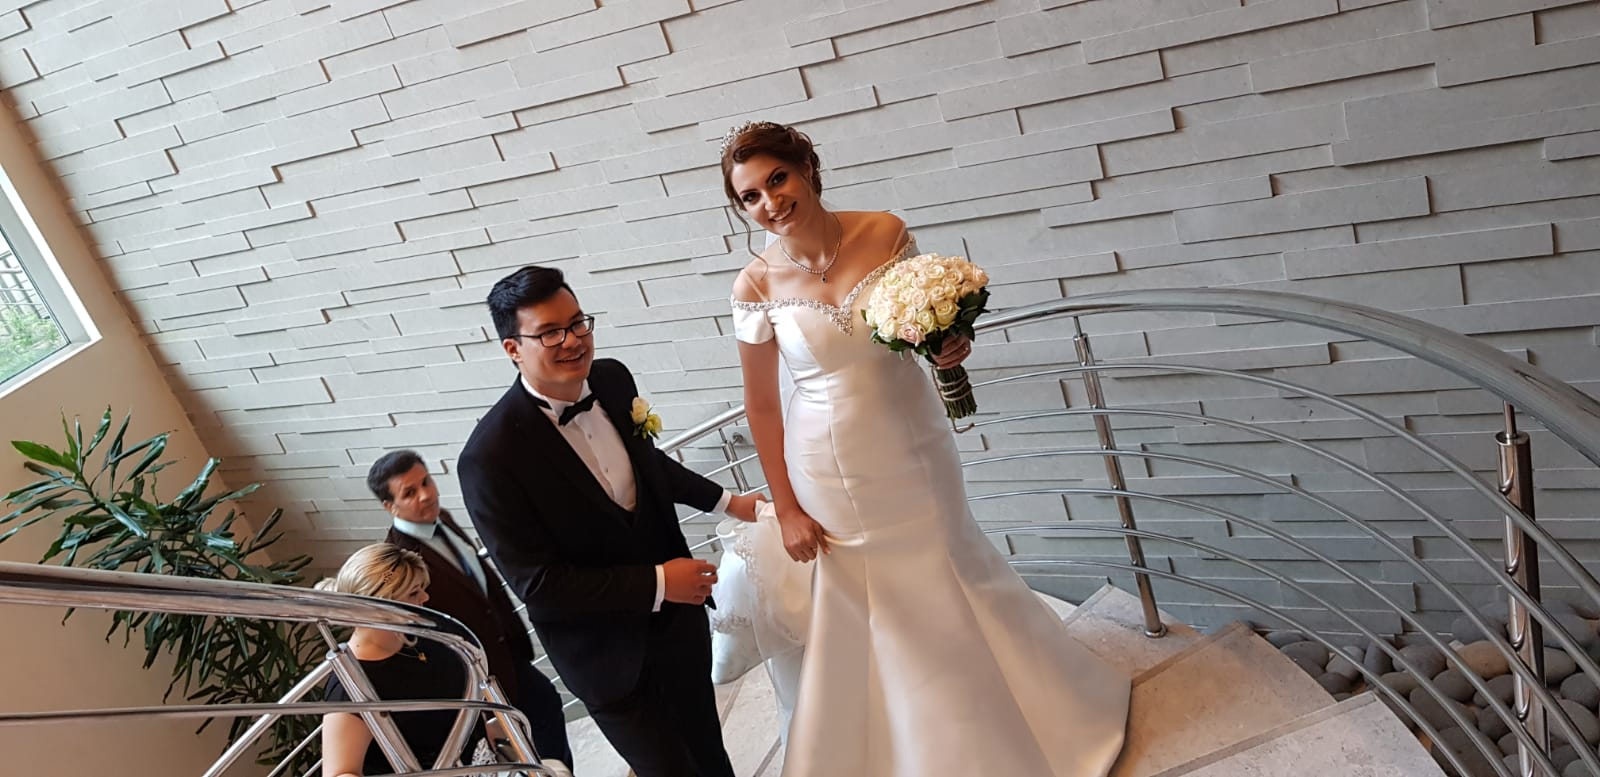 İranian Wedding Planner in Turkey